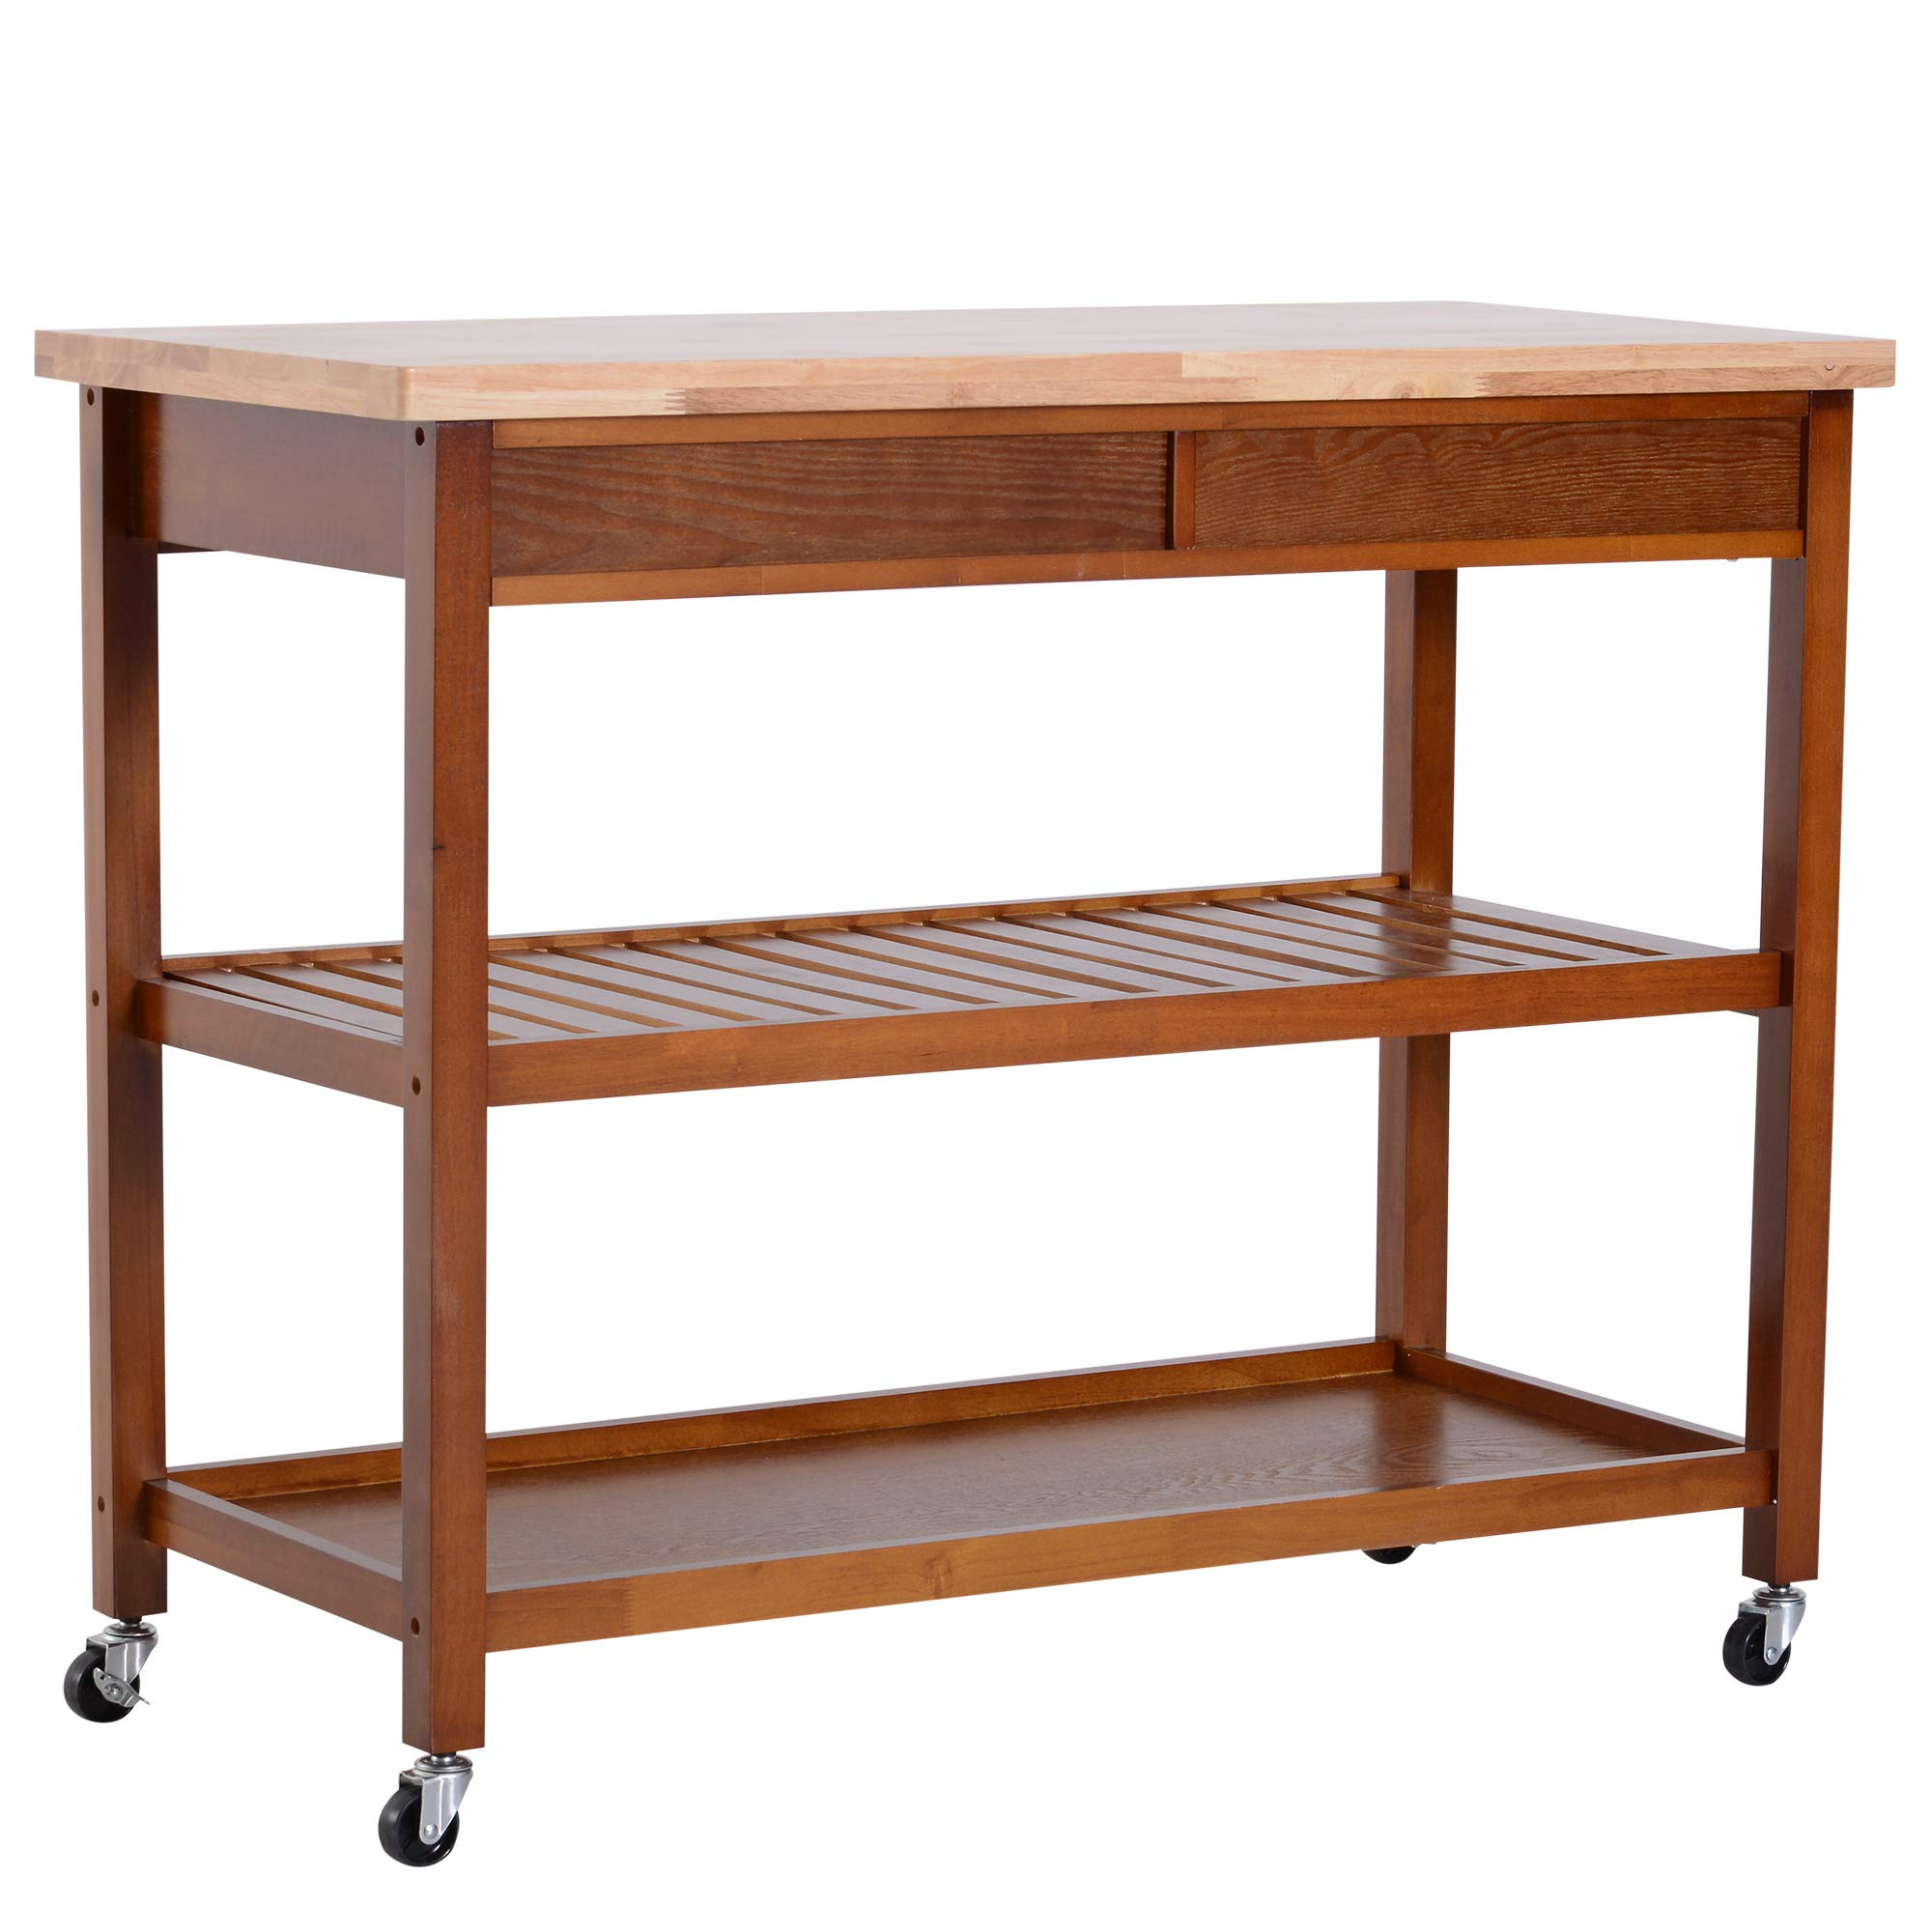 HOMCOM 44'' 3-Tier Rubberwood Kitchen Island Cart on Wheels - Brown by HOMCOM (Image #6)